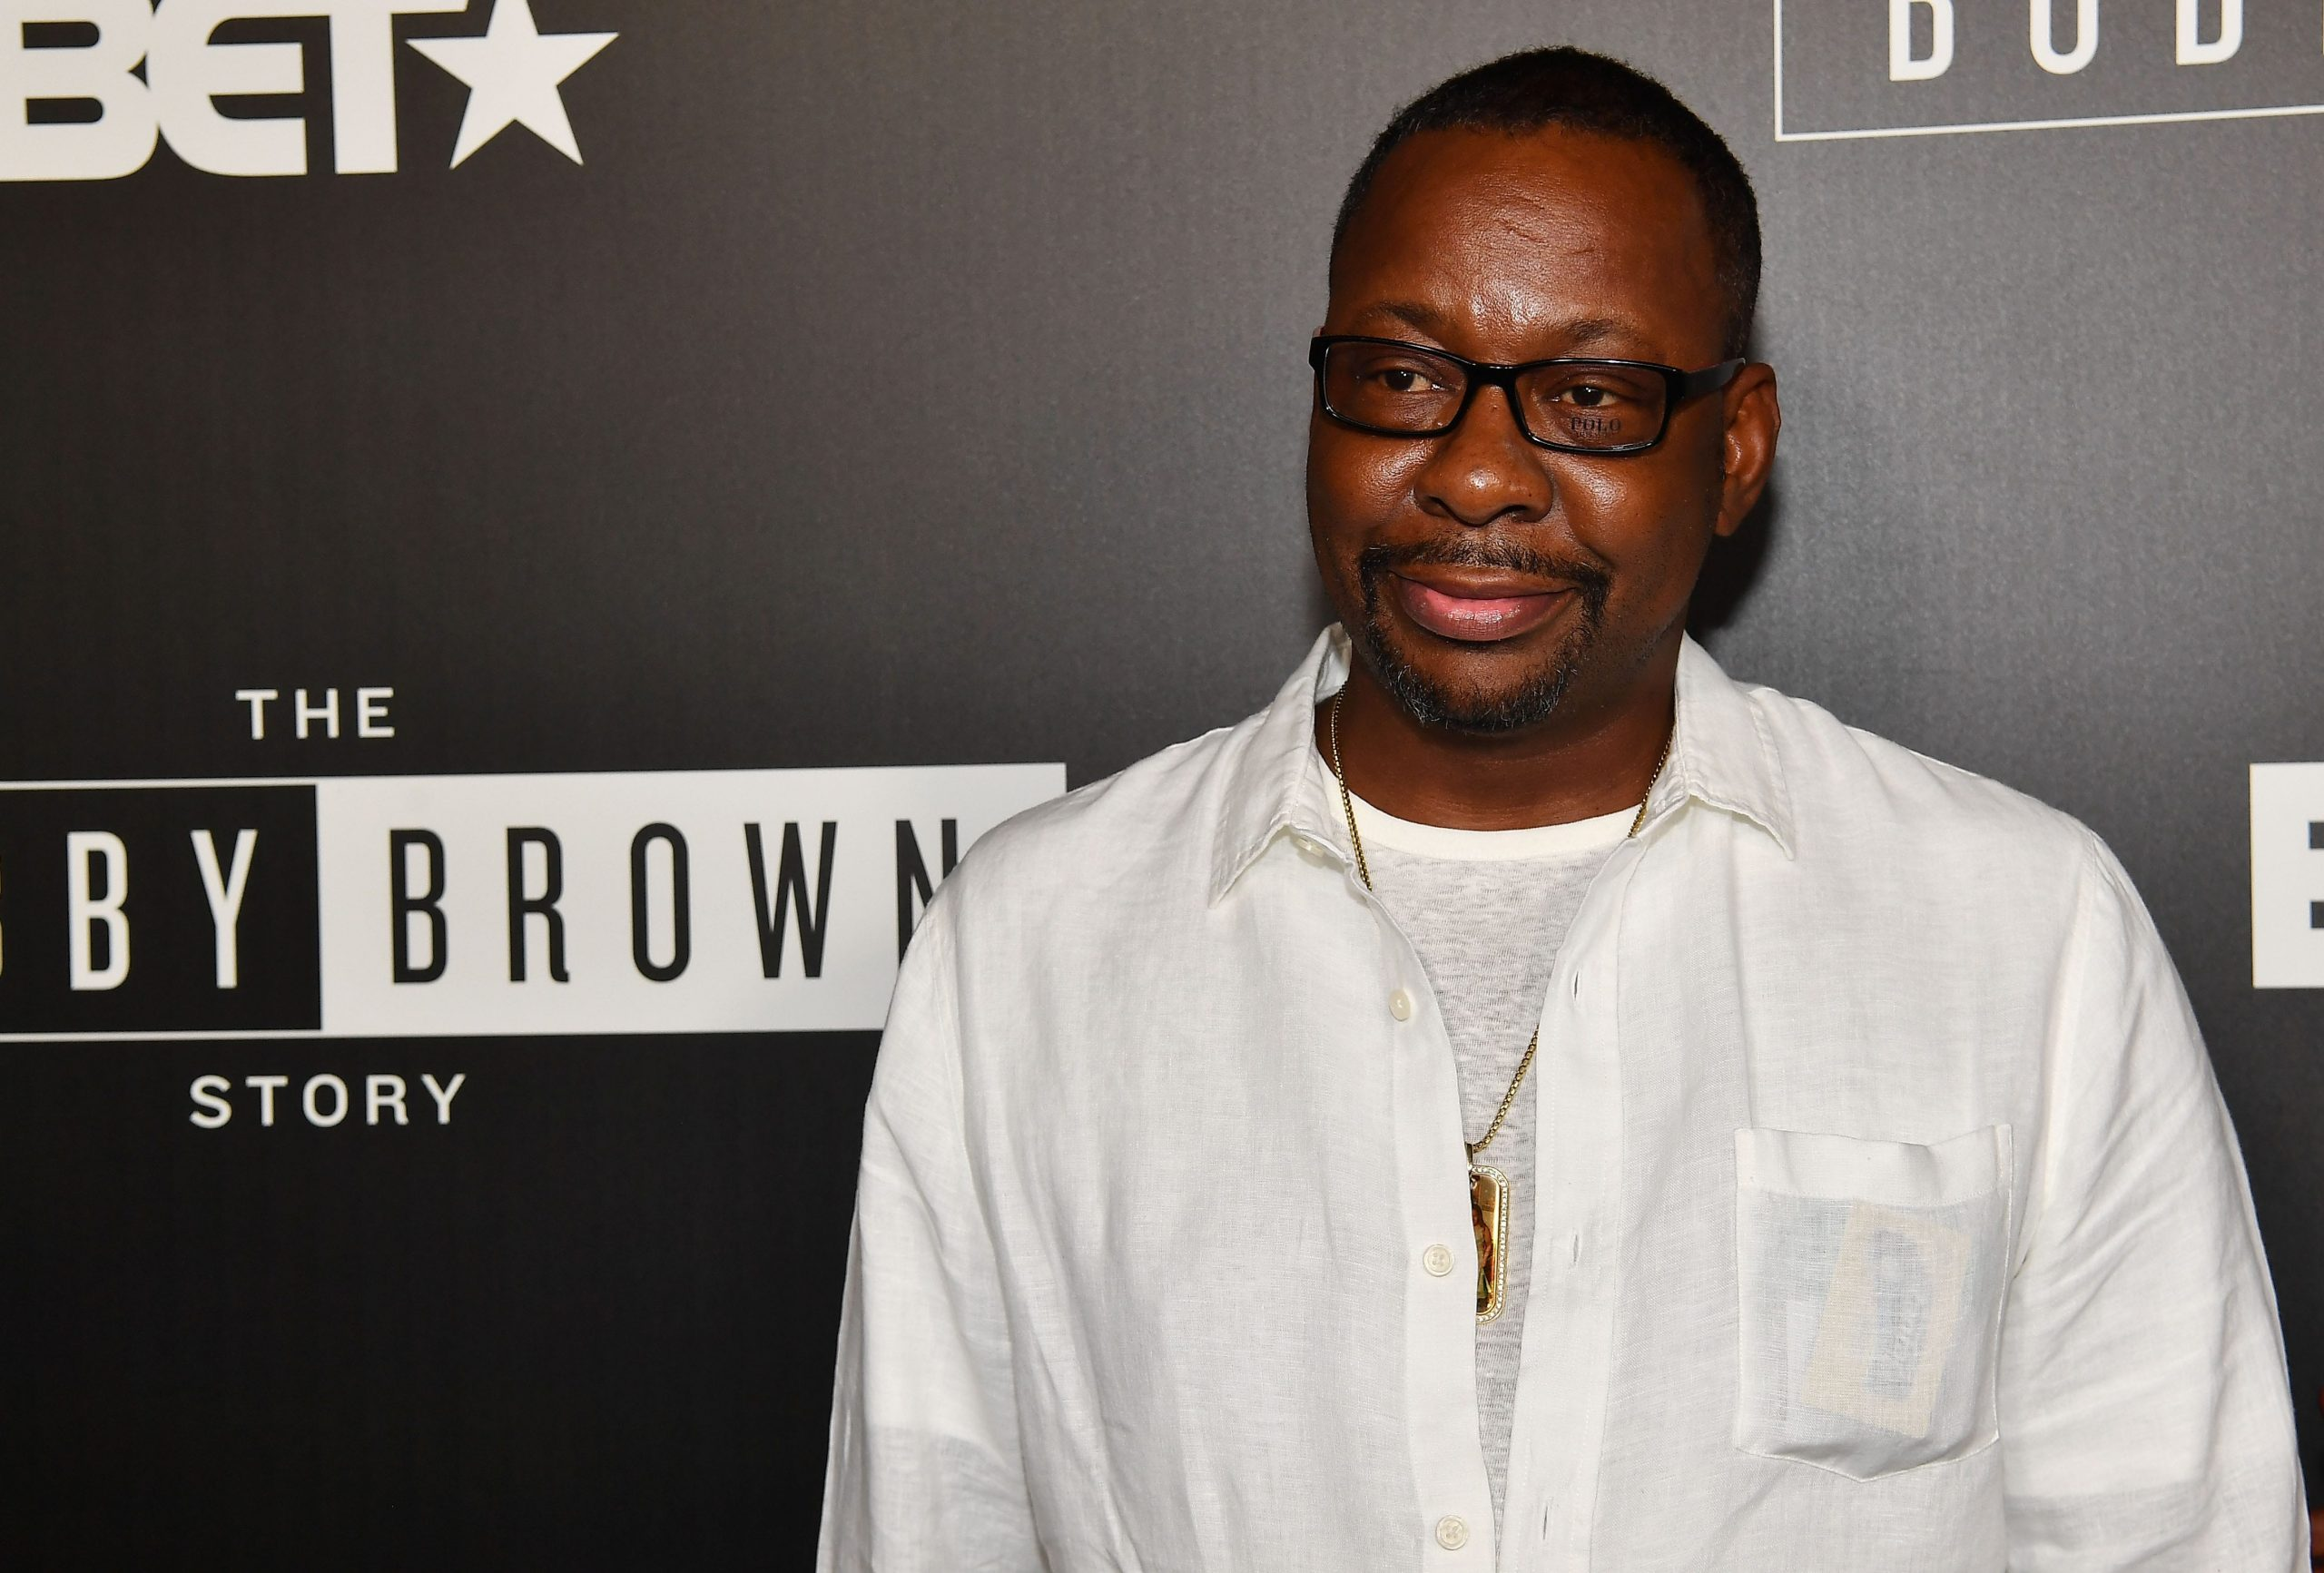 Bobby Brown Net Worth 2020, Biography, Career and Awards